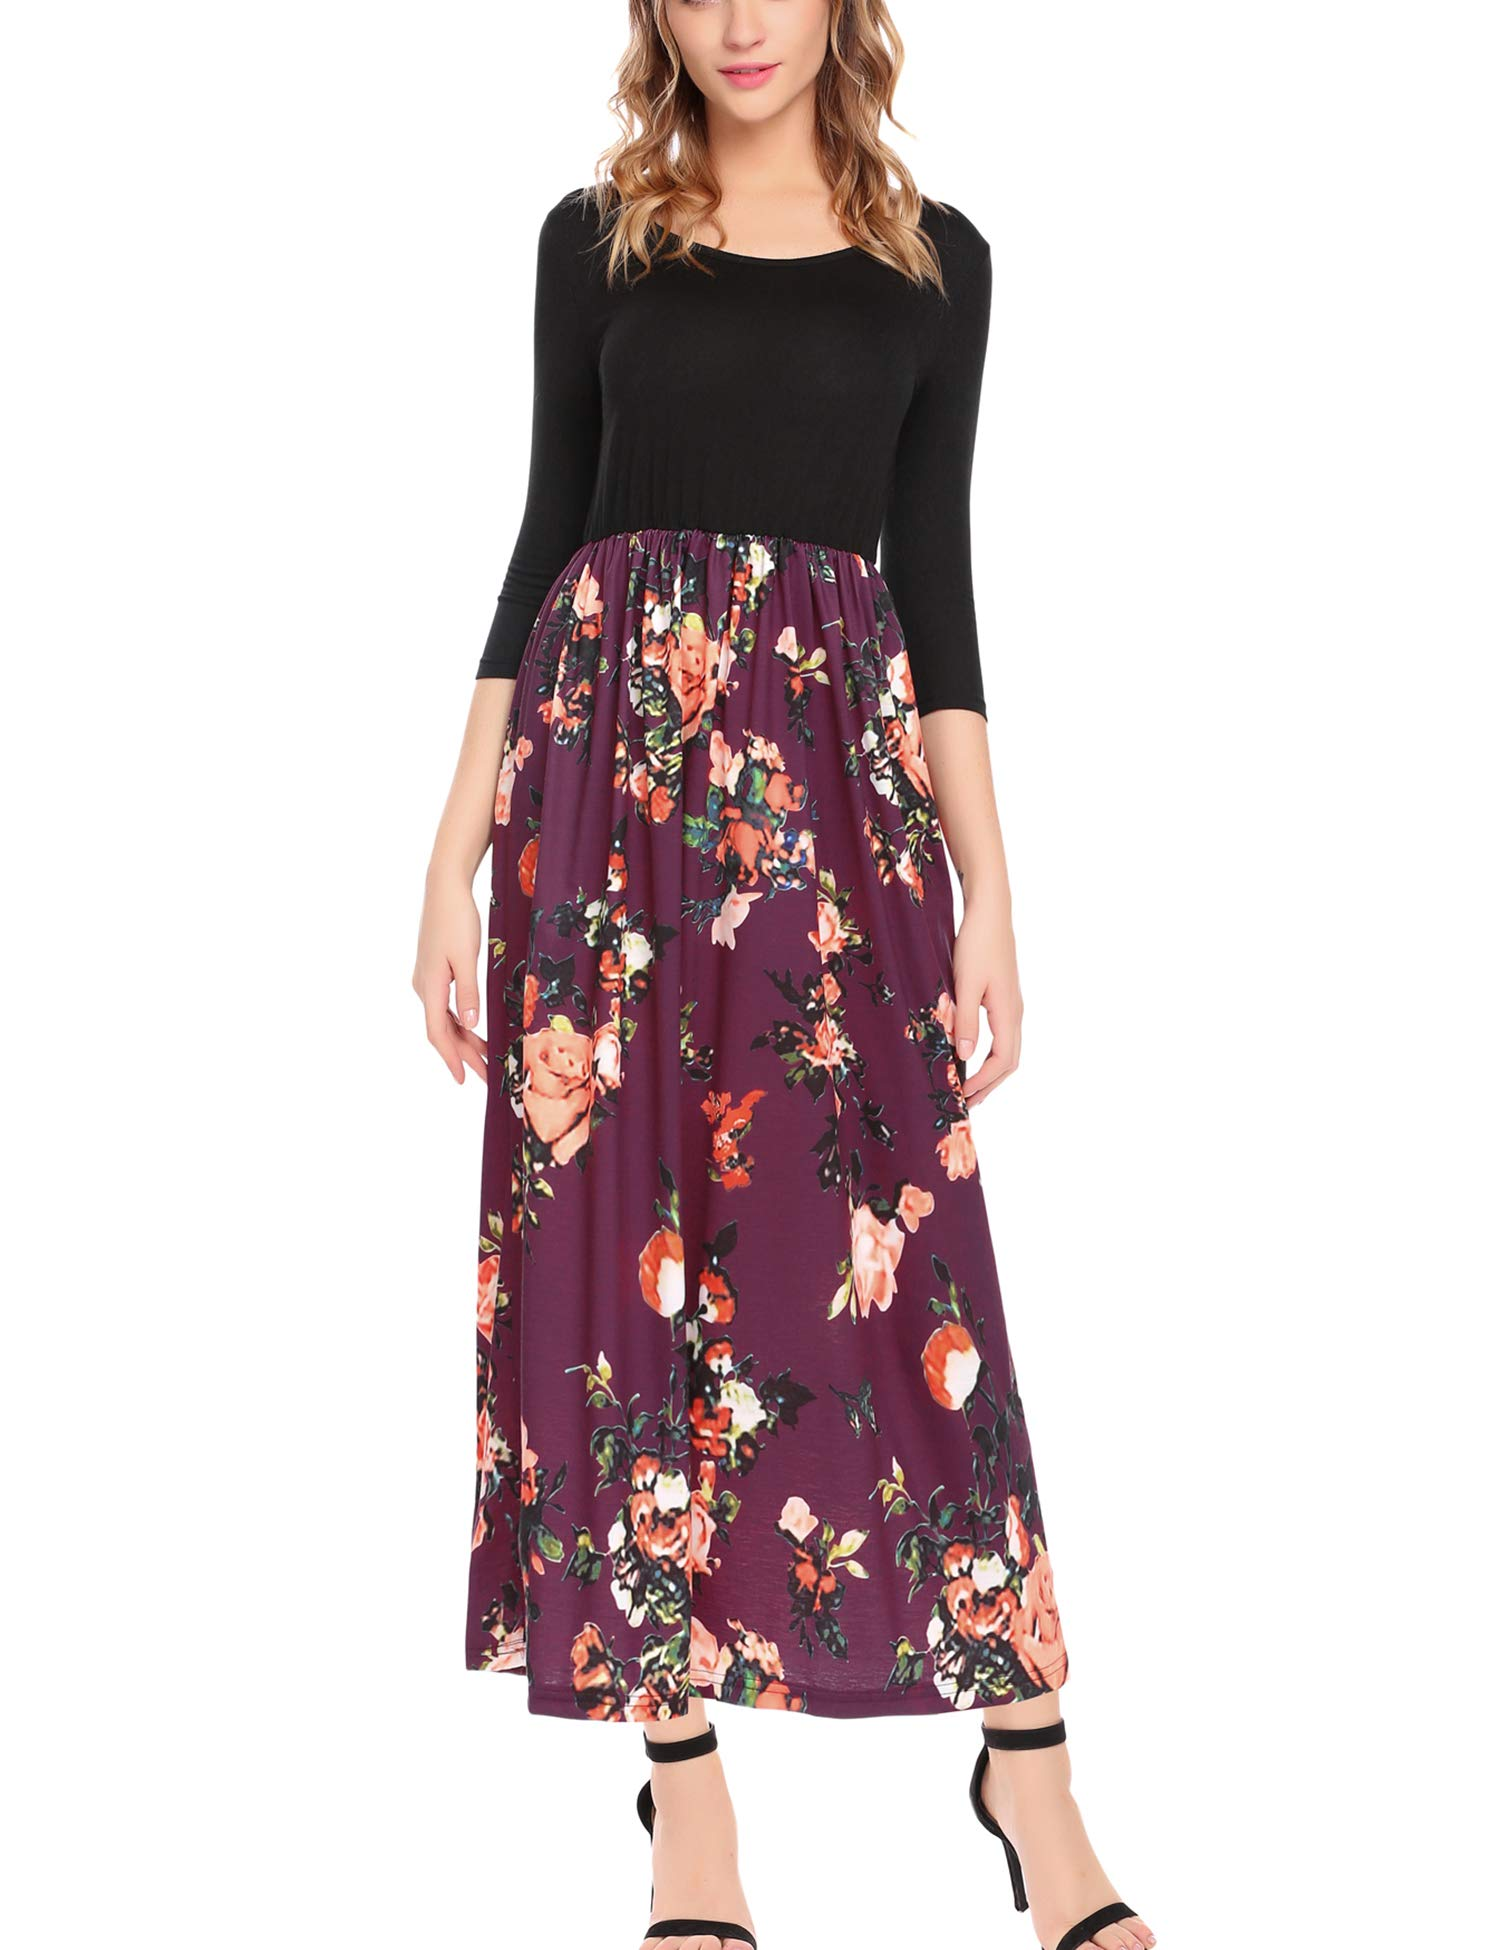 ELESOL Women Floral Print 3/4 Sleeve Solid Casual Swing Pleated Long Maxi Dress Floral Purple S